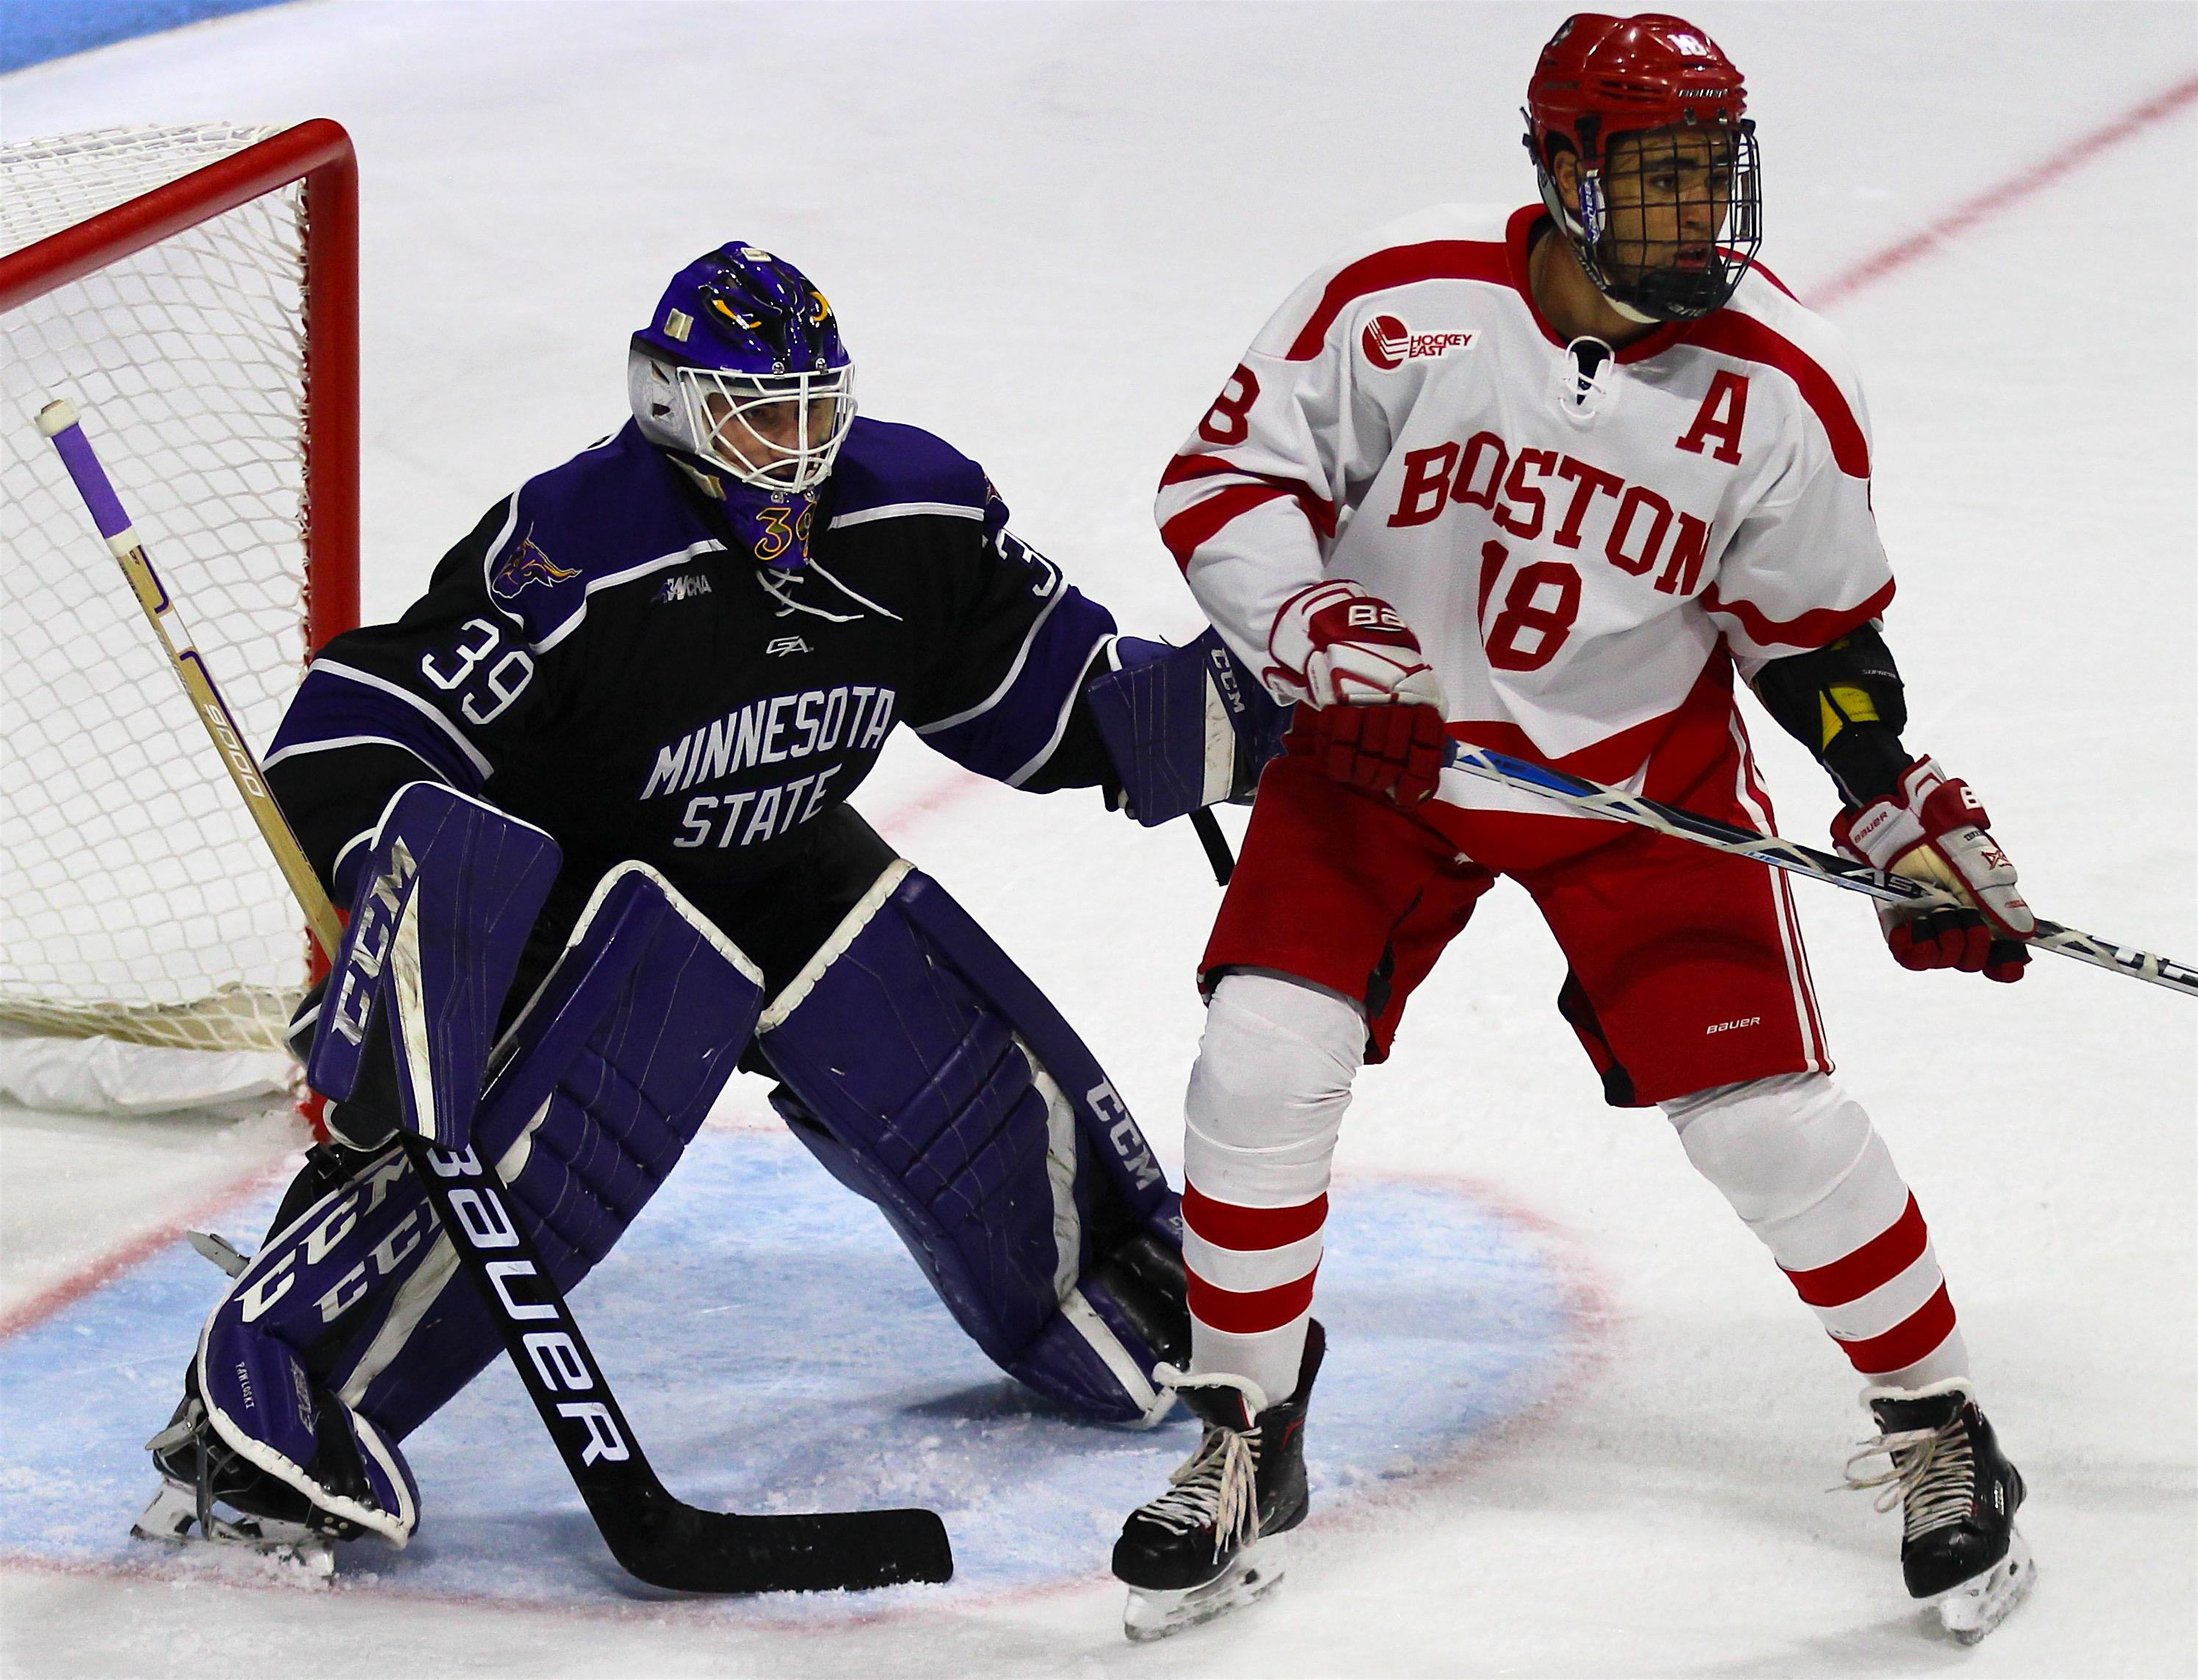 Jordan Greenway with Boston University (photo courtesy of Matt Dresens)